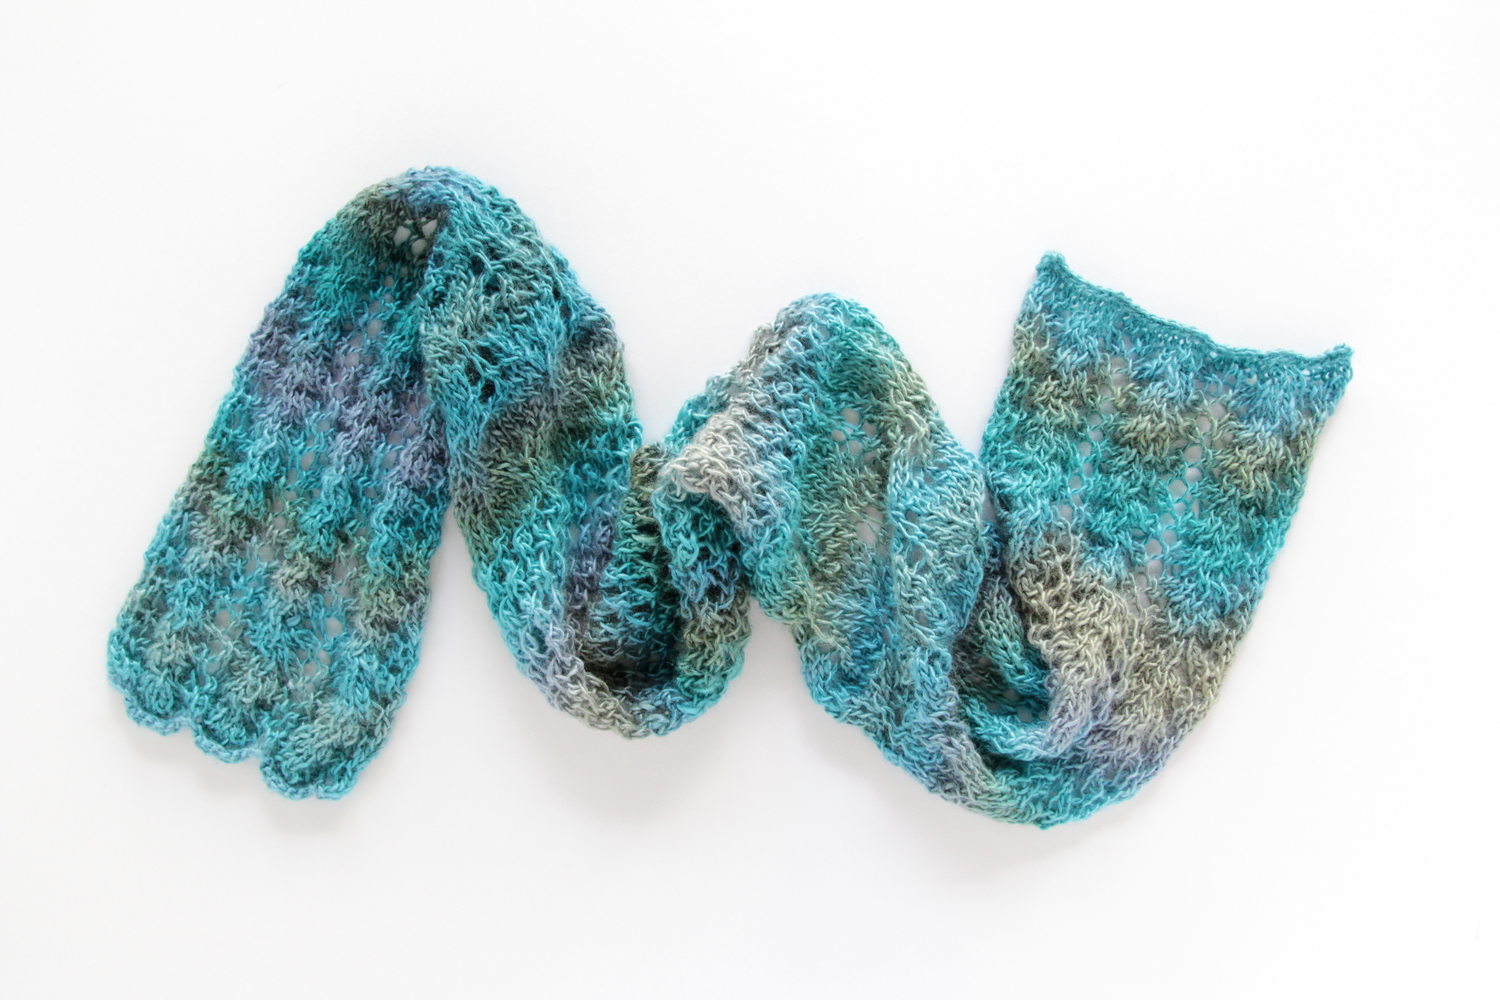 spring meadow knit along